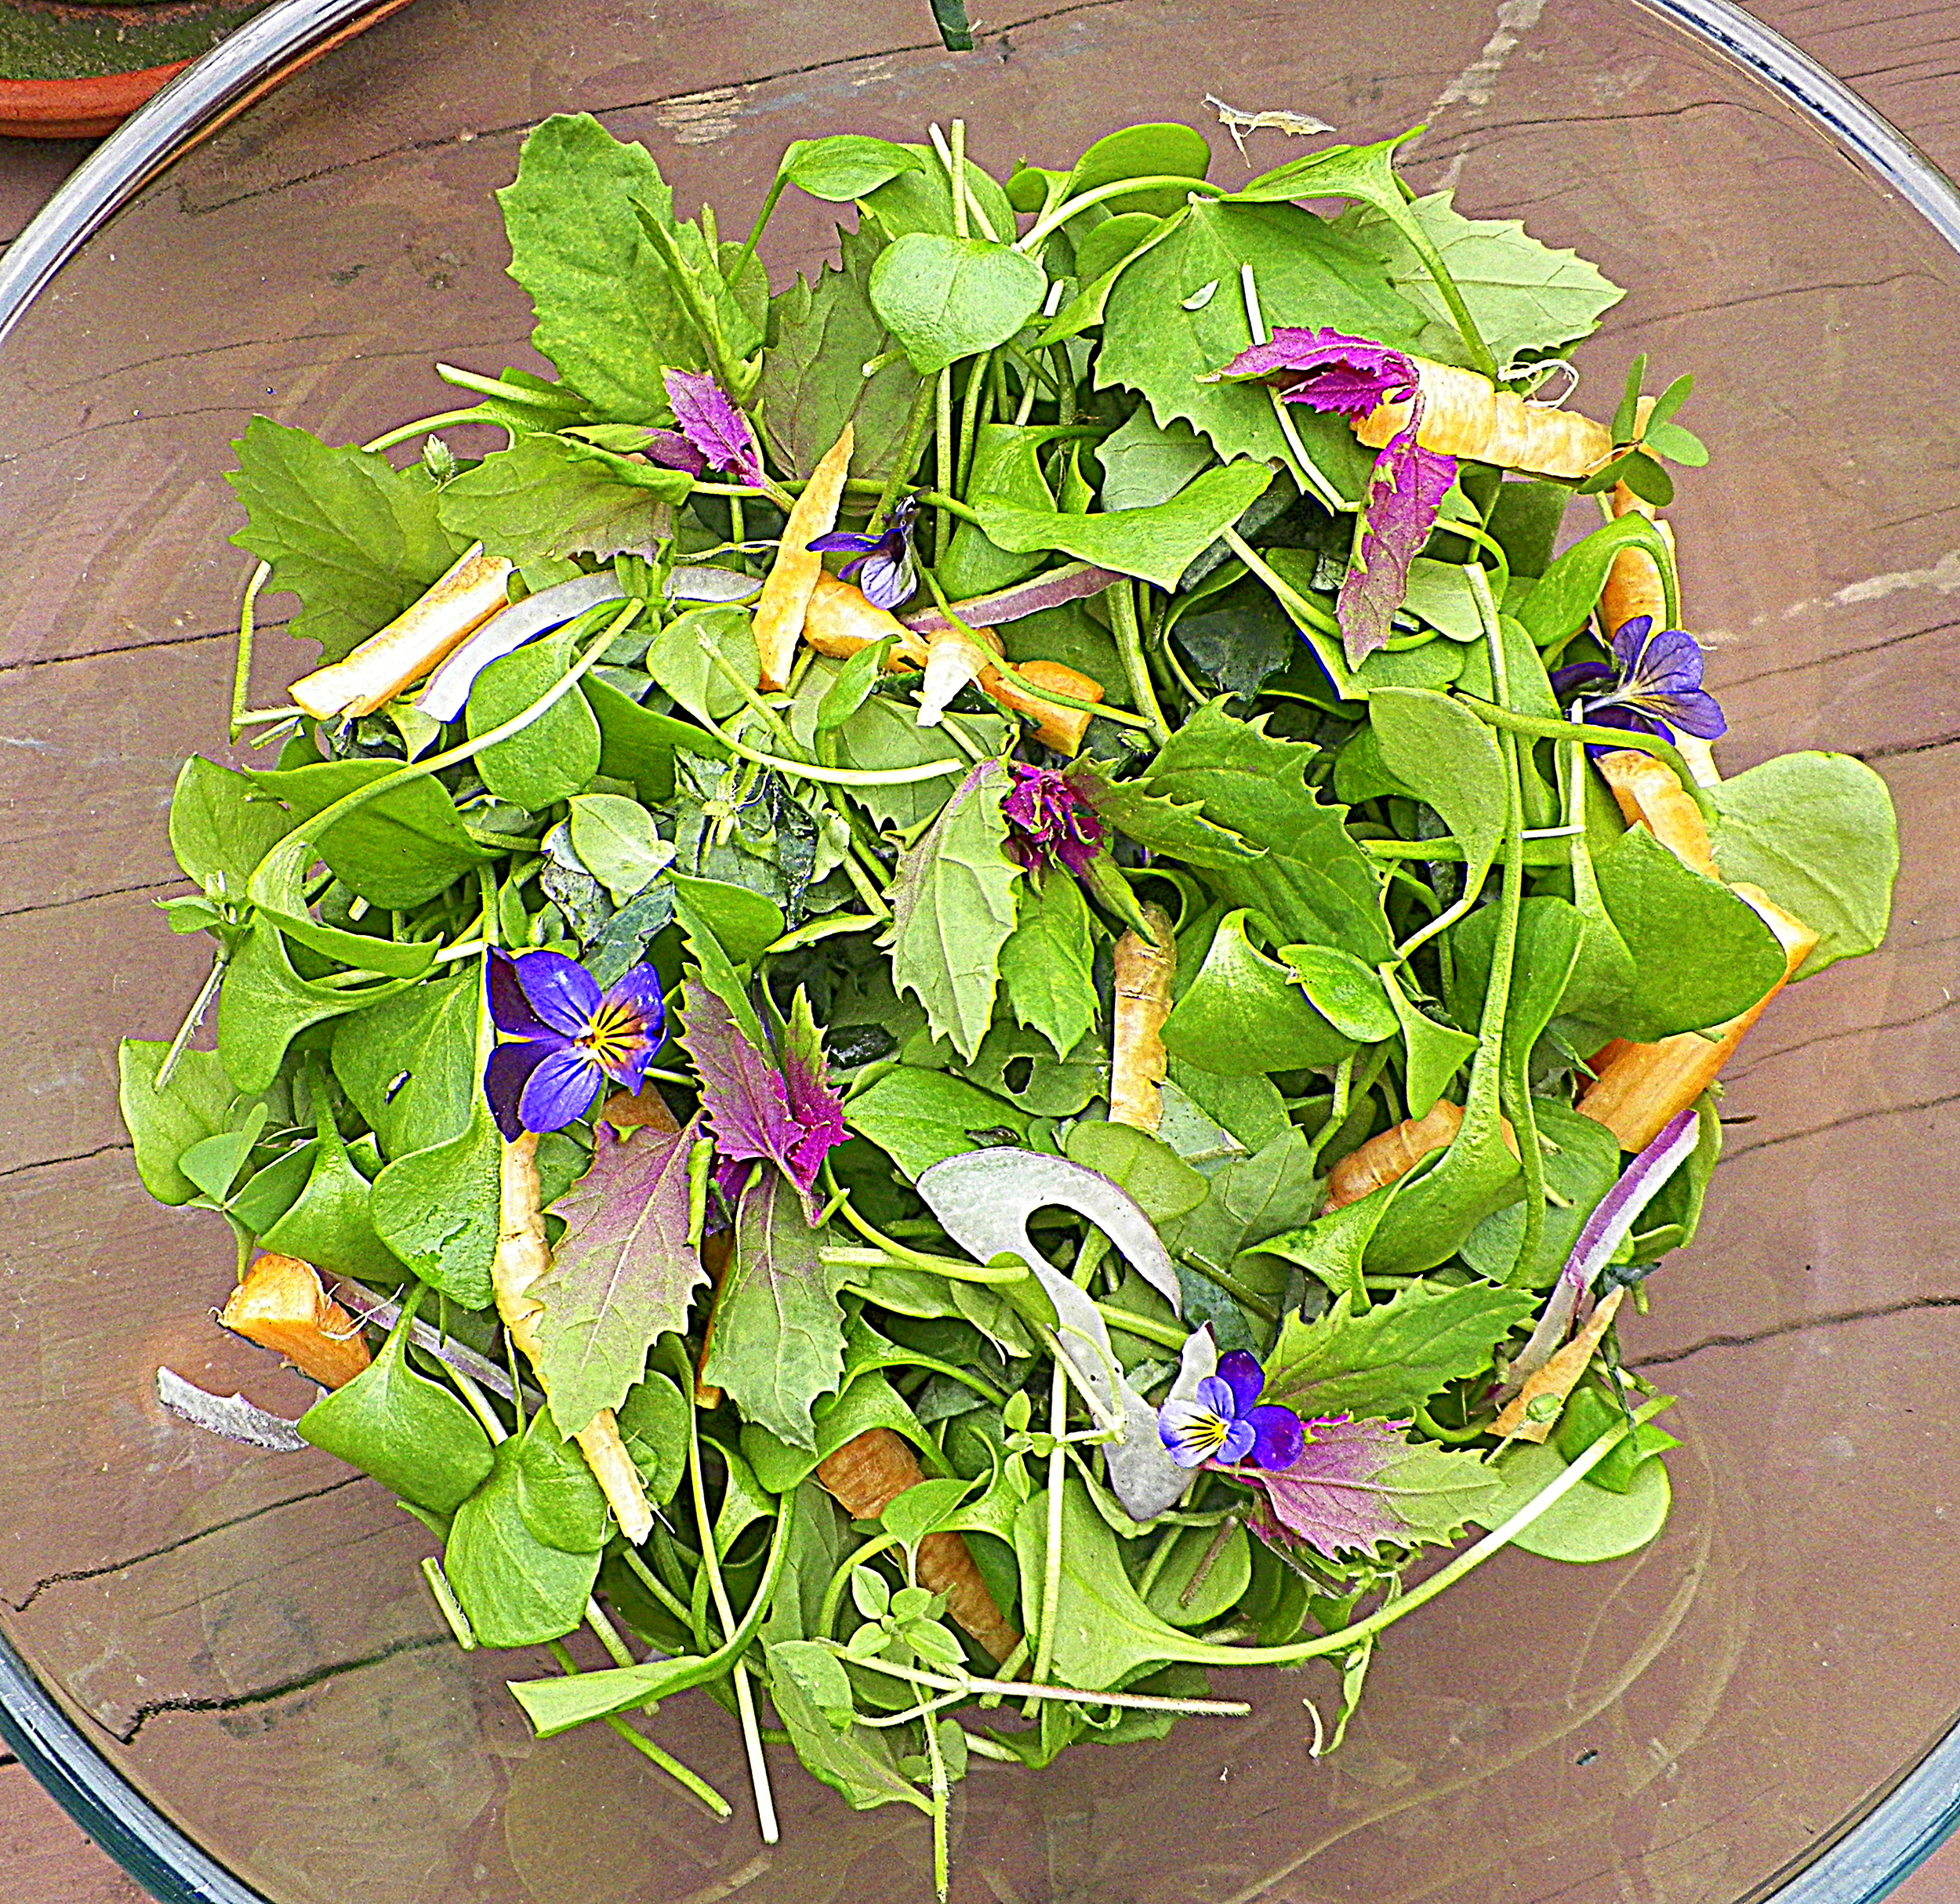 Season's last garden salad w/ miners lettuce, lambs quarters, wood sorrel, chickweed, fennel flower, onion, pansy, kale